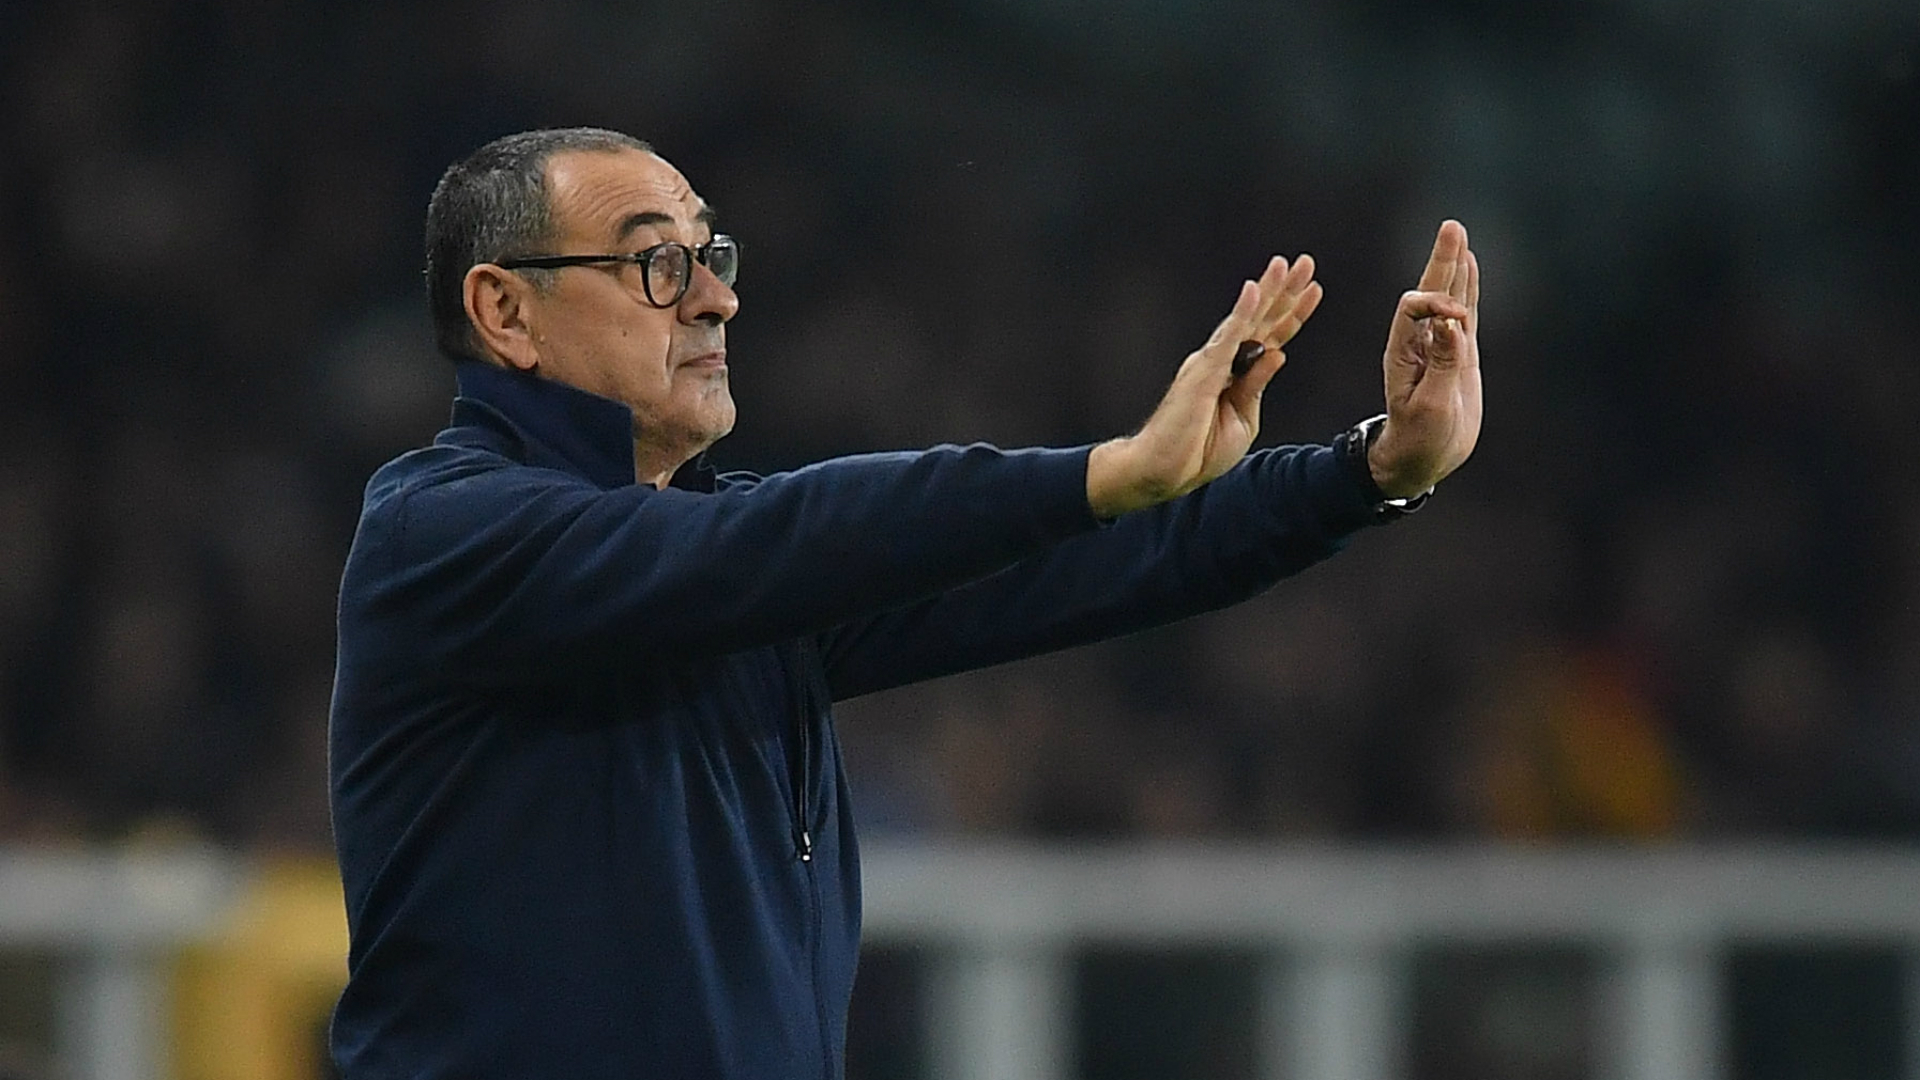 The state of the pitch and Torino's tactics meant Juventus could not play to their fluid best in the derby, according to Maurizio Sarri.